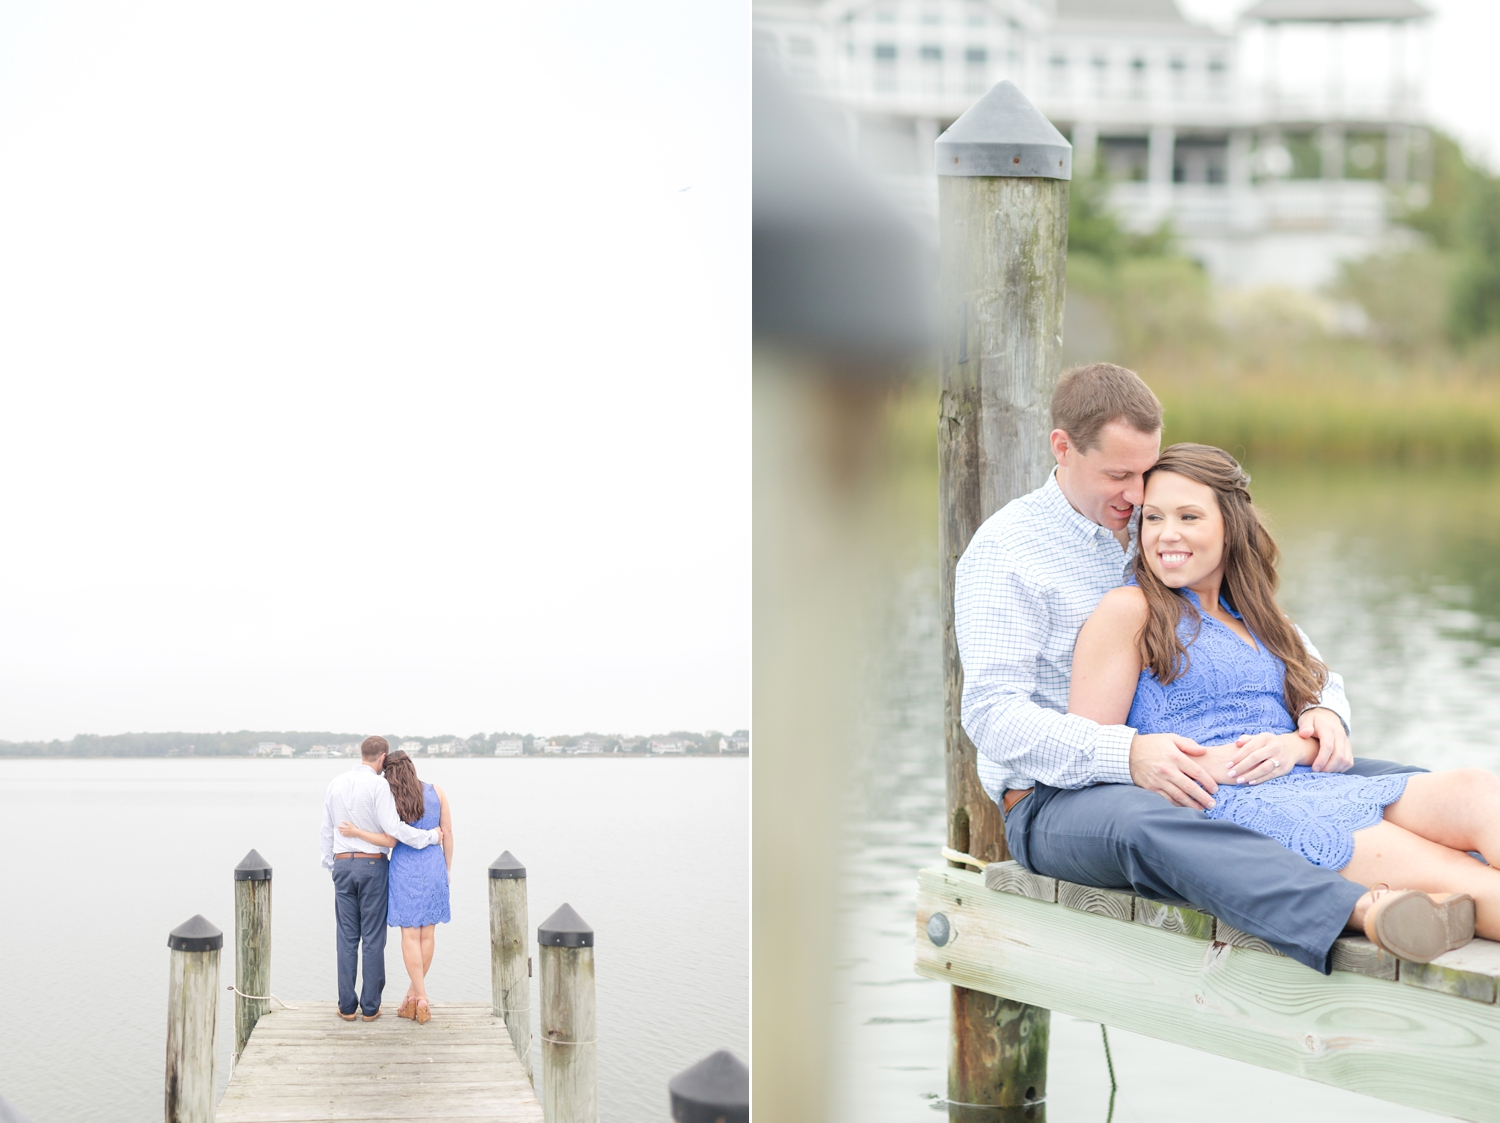 Susan Sturgeon & Stephen George Engagement-298_bethany-beach-engagement-shoot-delaware-maryland-photographer-anna-grace-photography-photo.jpg